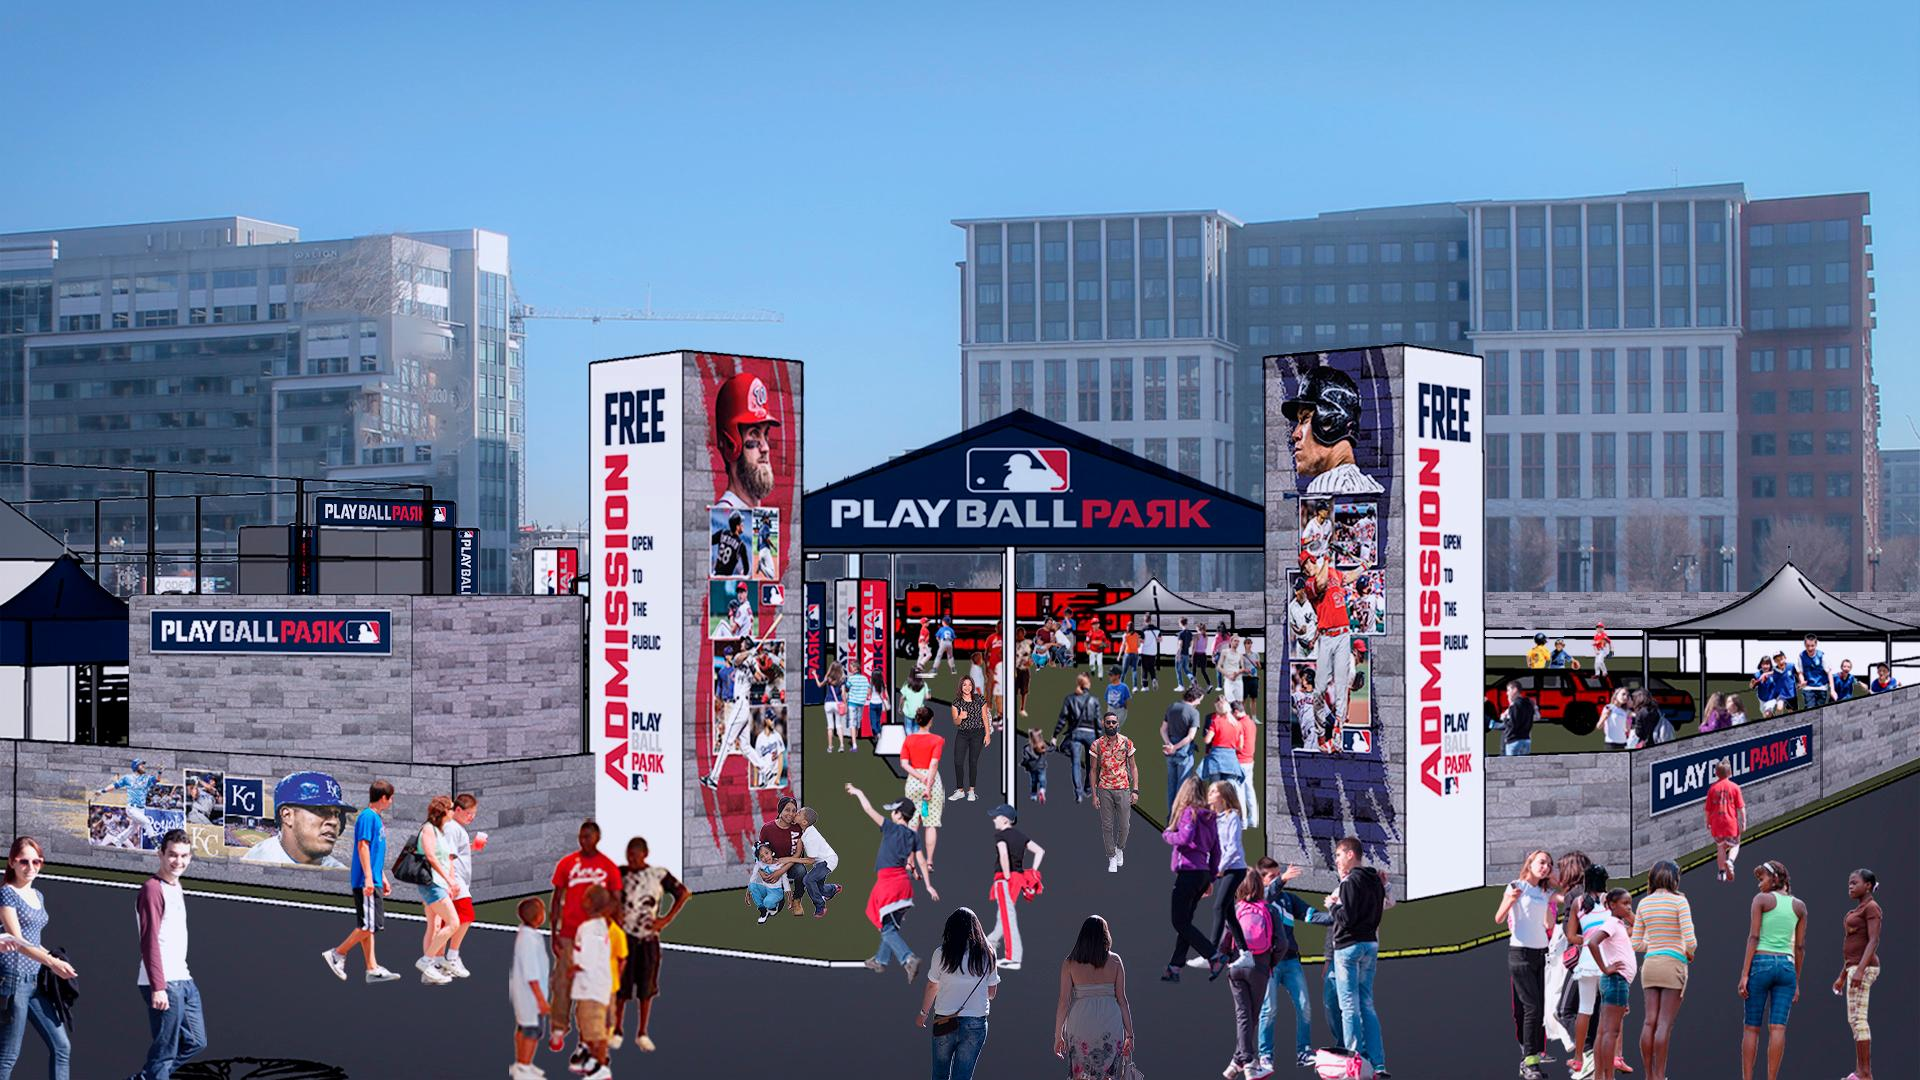 Starting Friday the 13th, Play Ball Park is a free event at the Yards, Parcel A. This is a huge outdoor interactive area for different types of baseball and softball activities for players and their families.{ } (Image: Courtesy MLB)